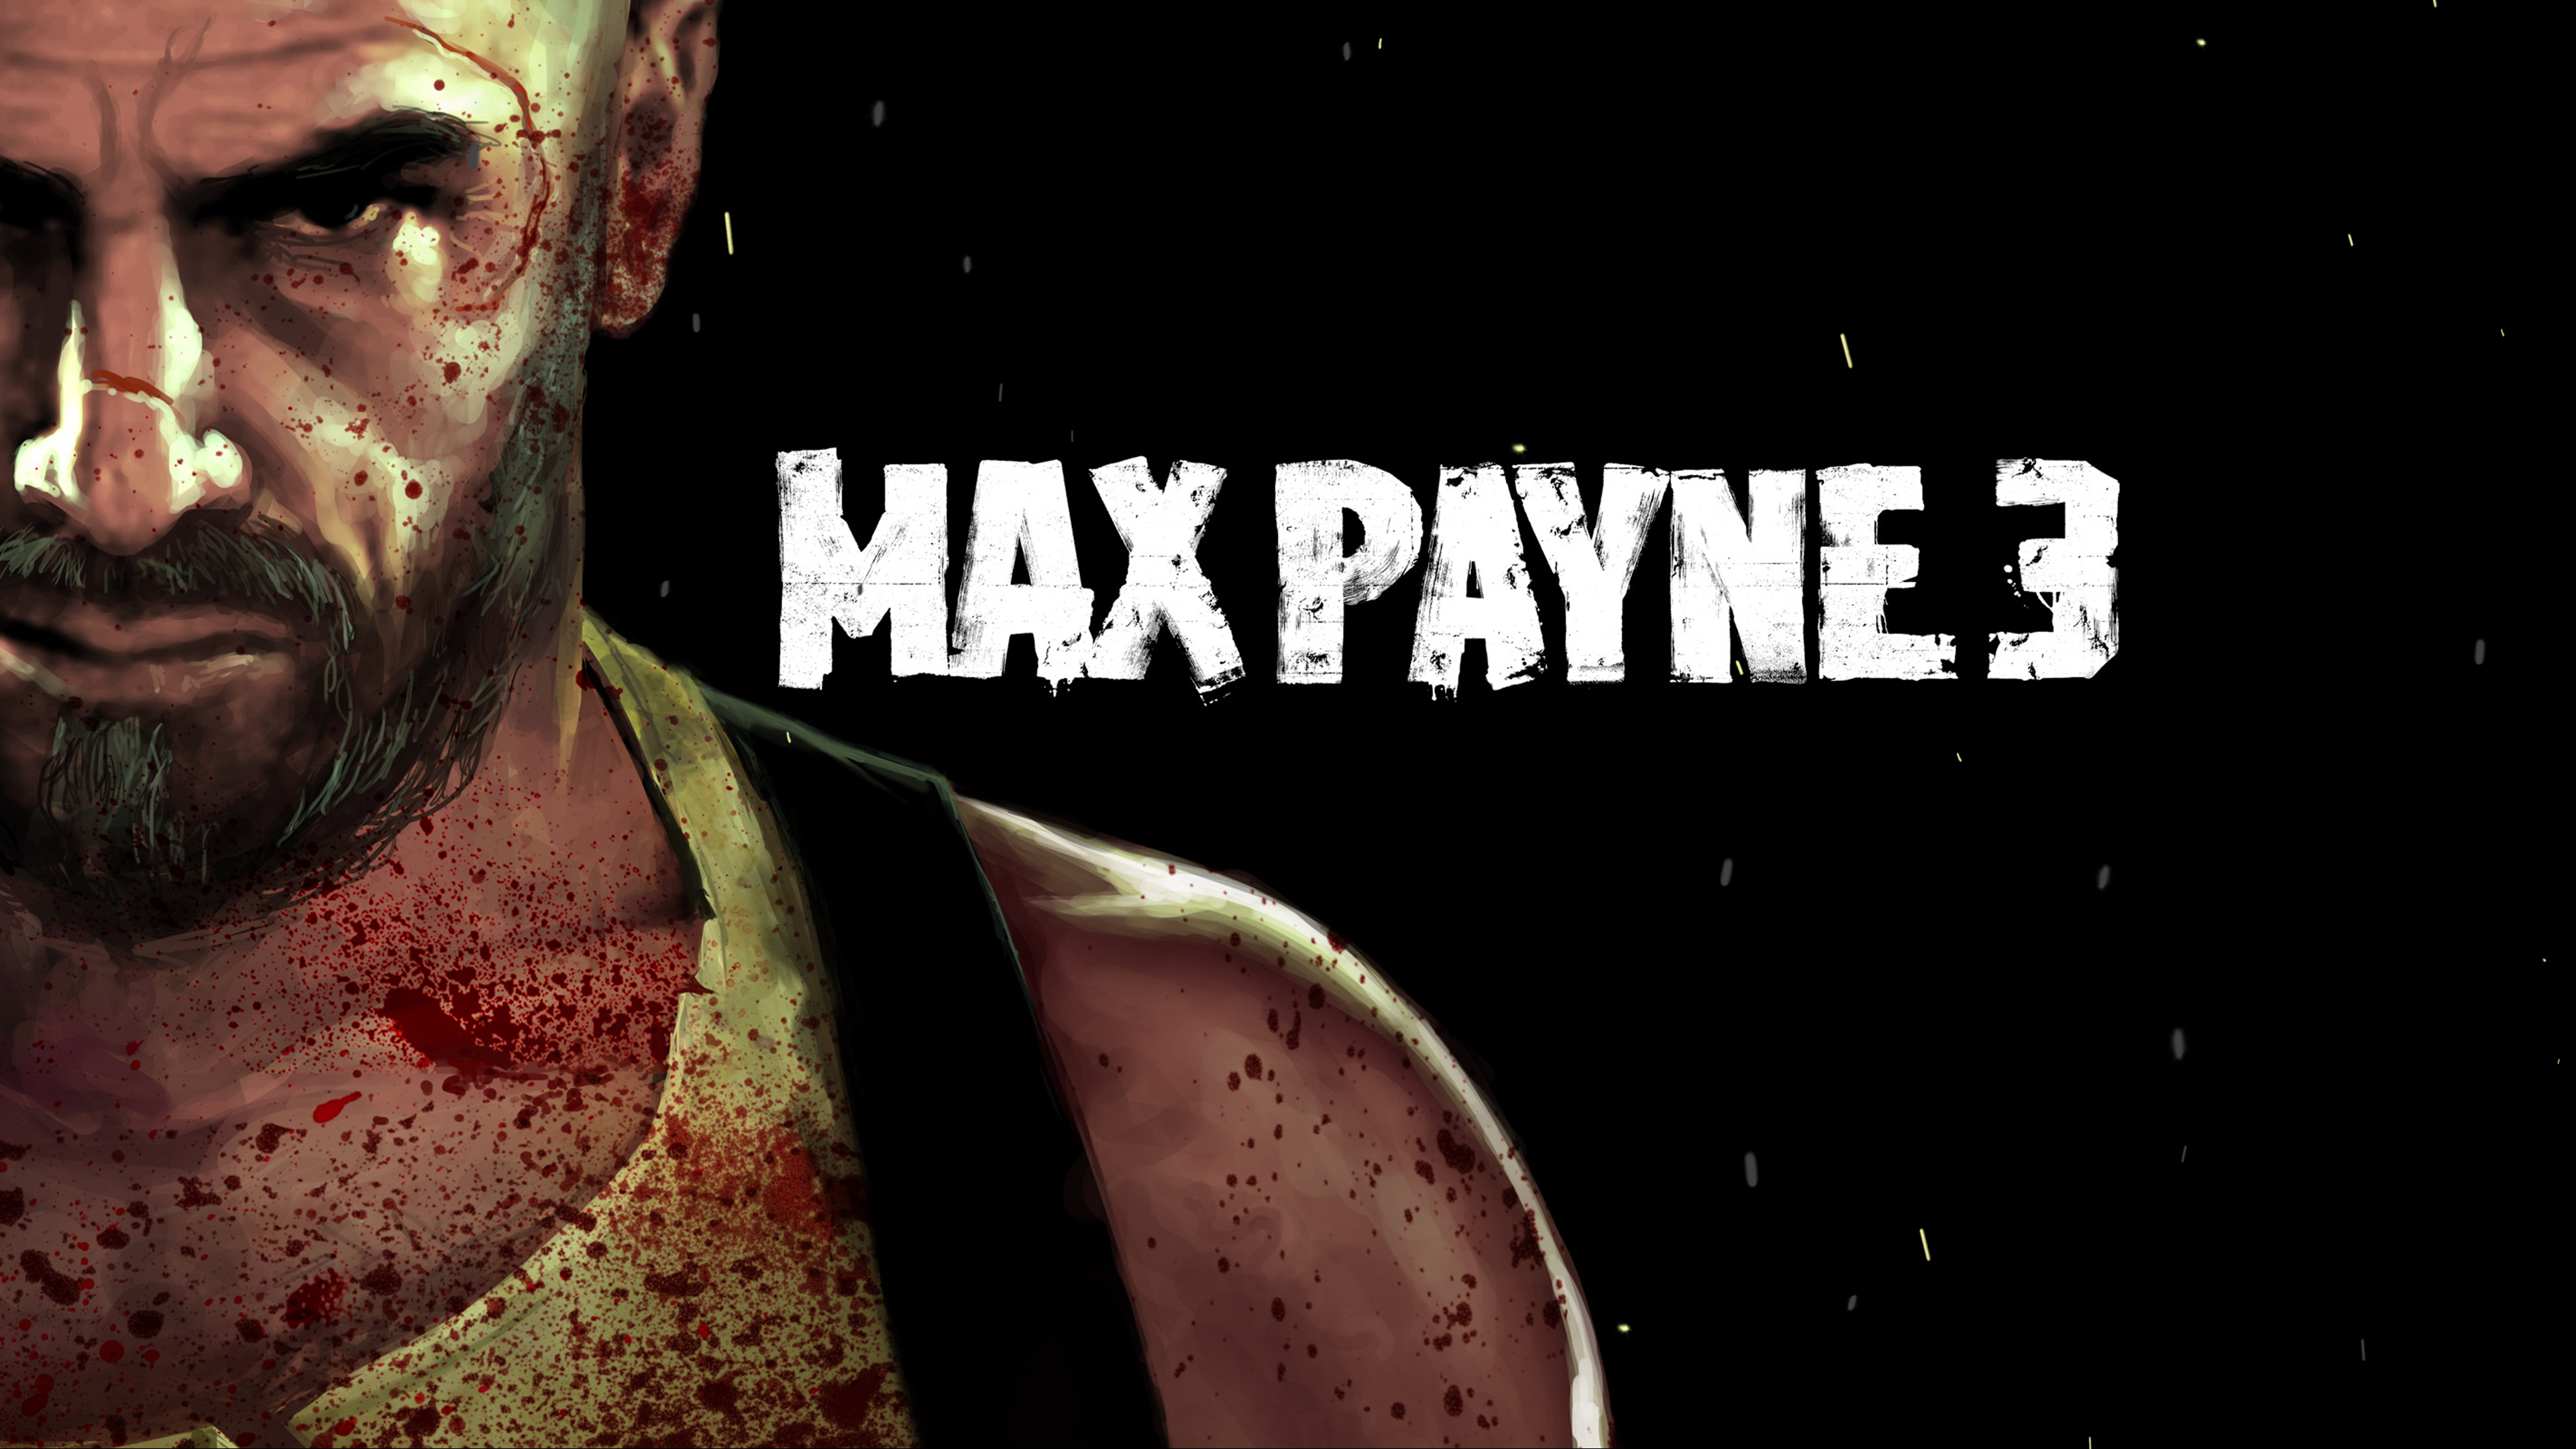 4k Max Payne 3 Wallpaper Hd